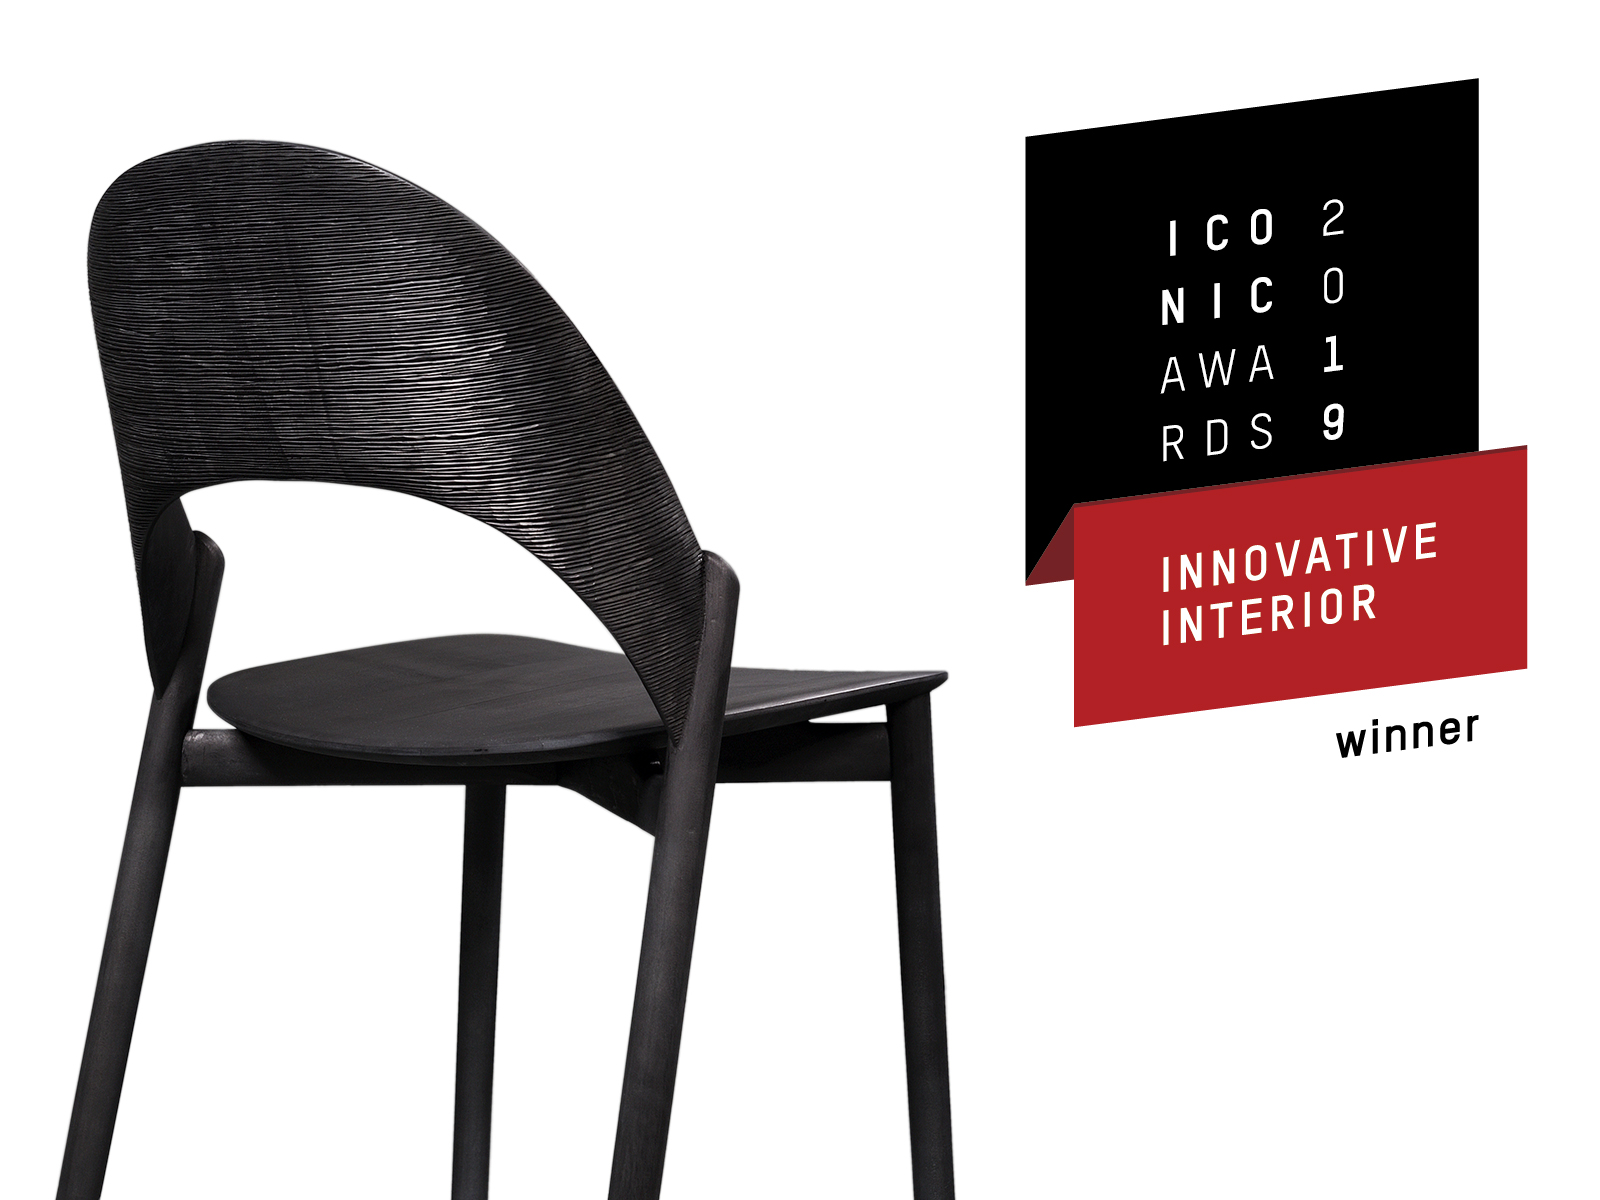 Iconic Awards 2019 - Sana chair for Zanat, Innovative Interior Winner 2019